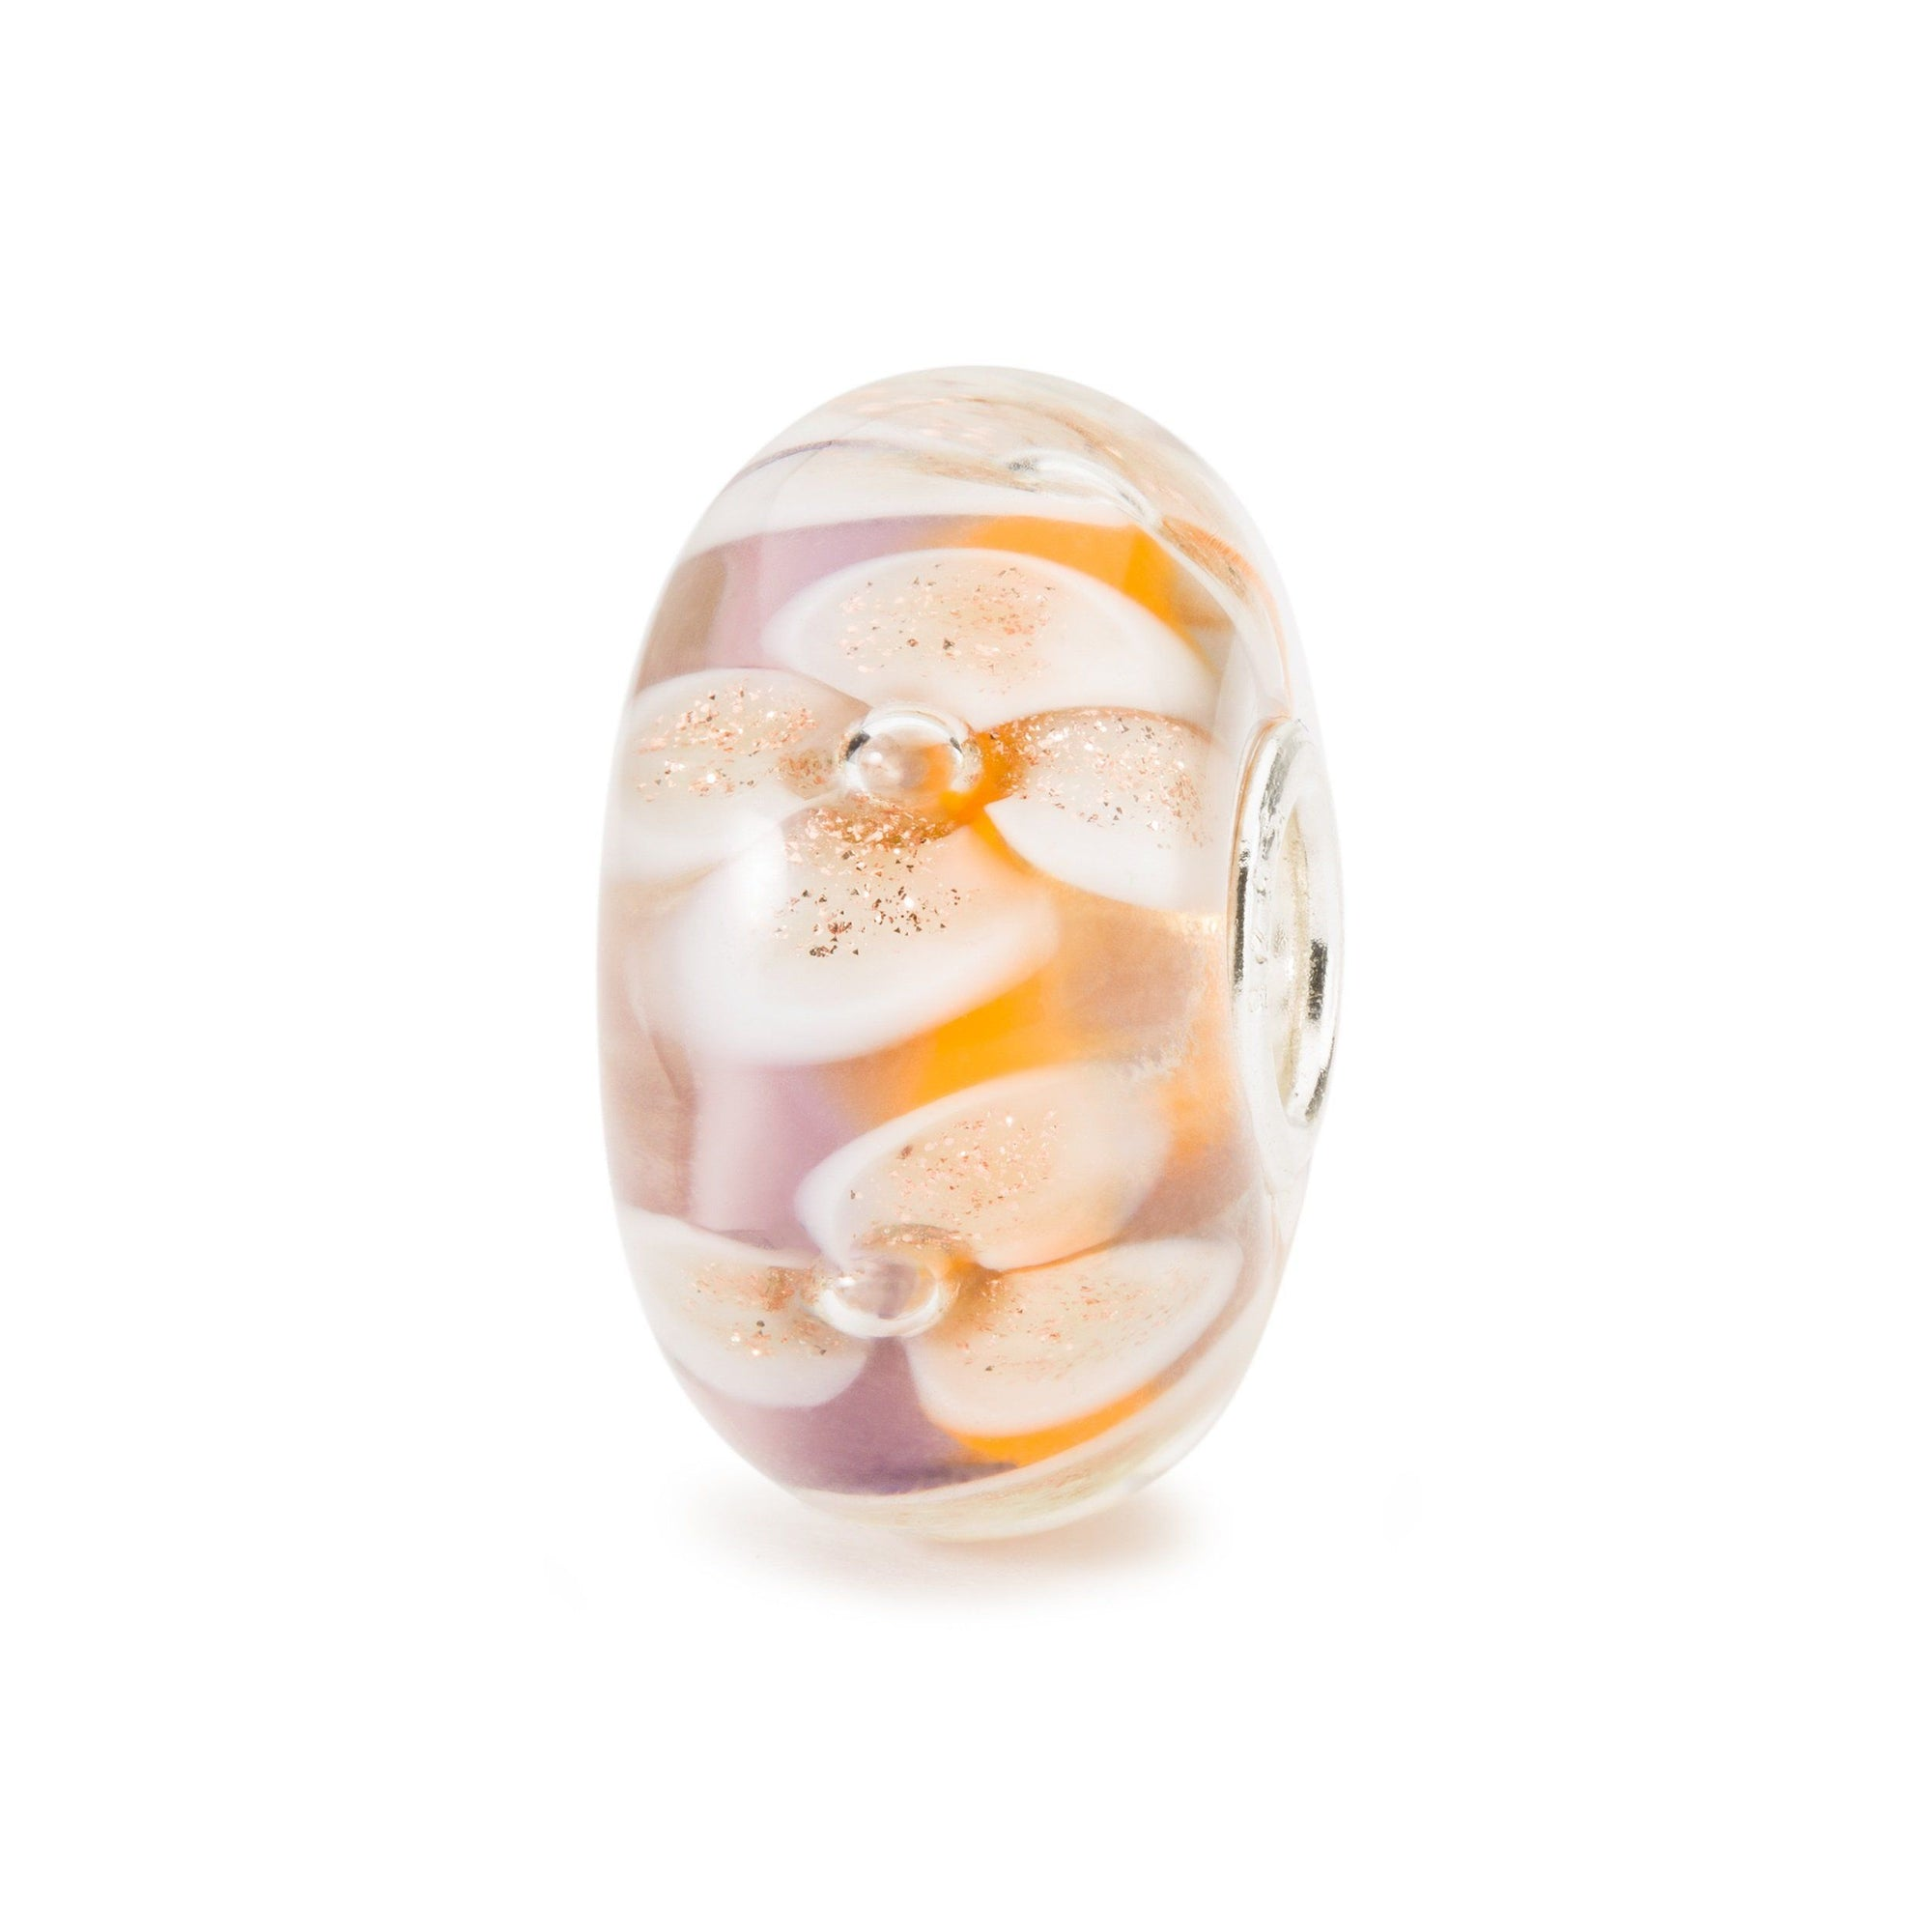 Glass charm bead for modern charm bracelet, Trollbeads, in pink and yellow with white flowers